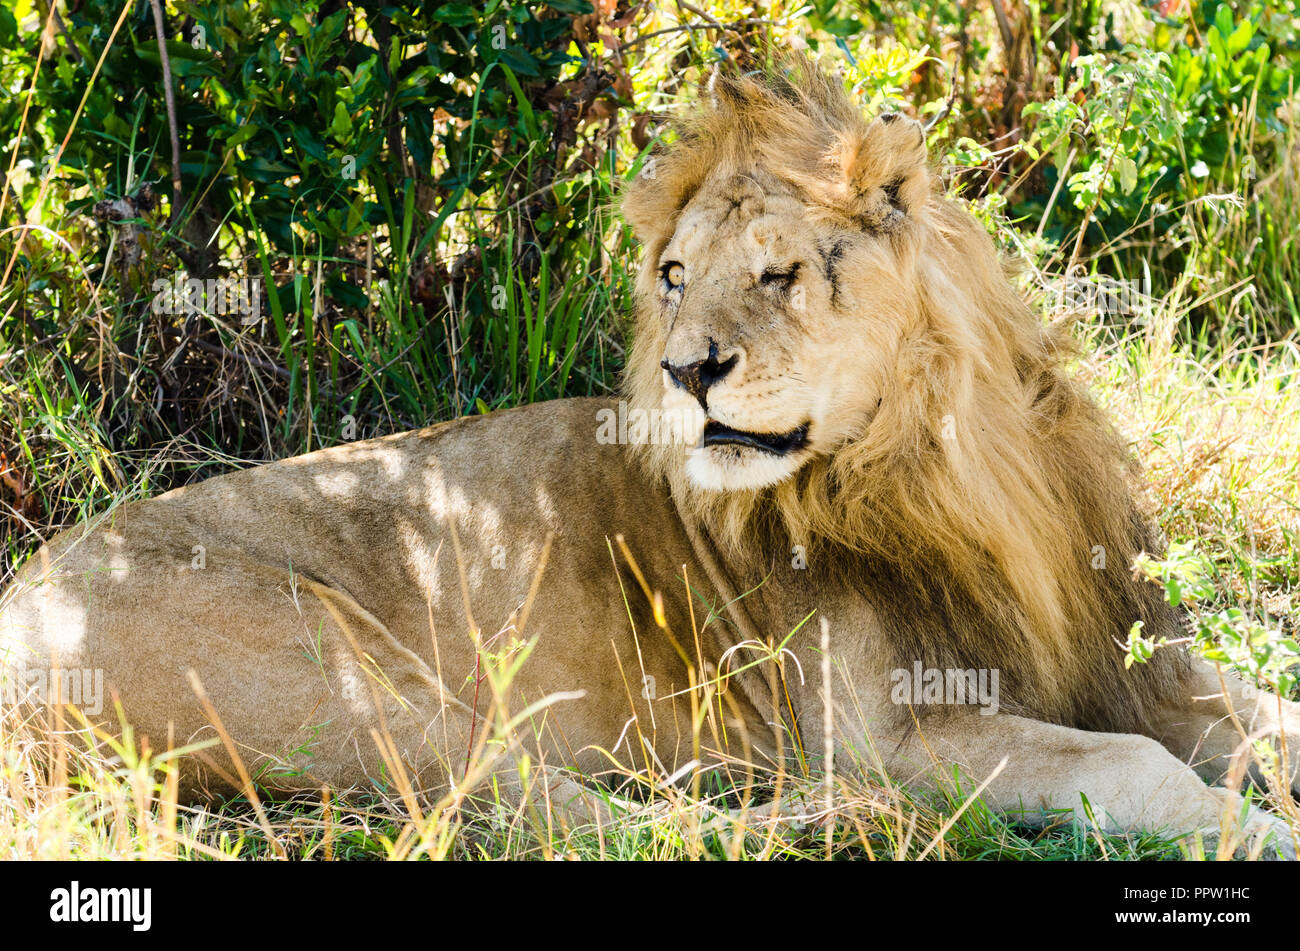 Adult lion with a scarred face, Maasai Mara National Reserve, Kenya Stock Photo